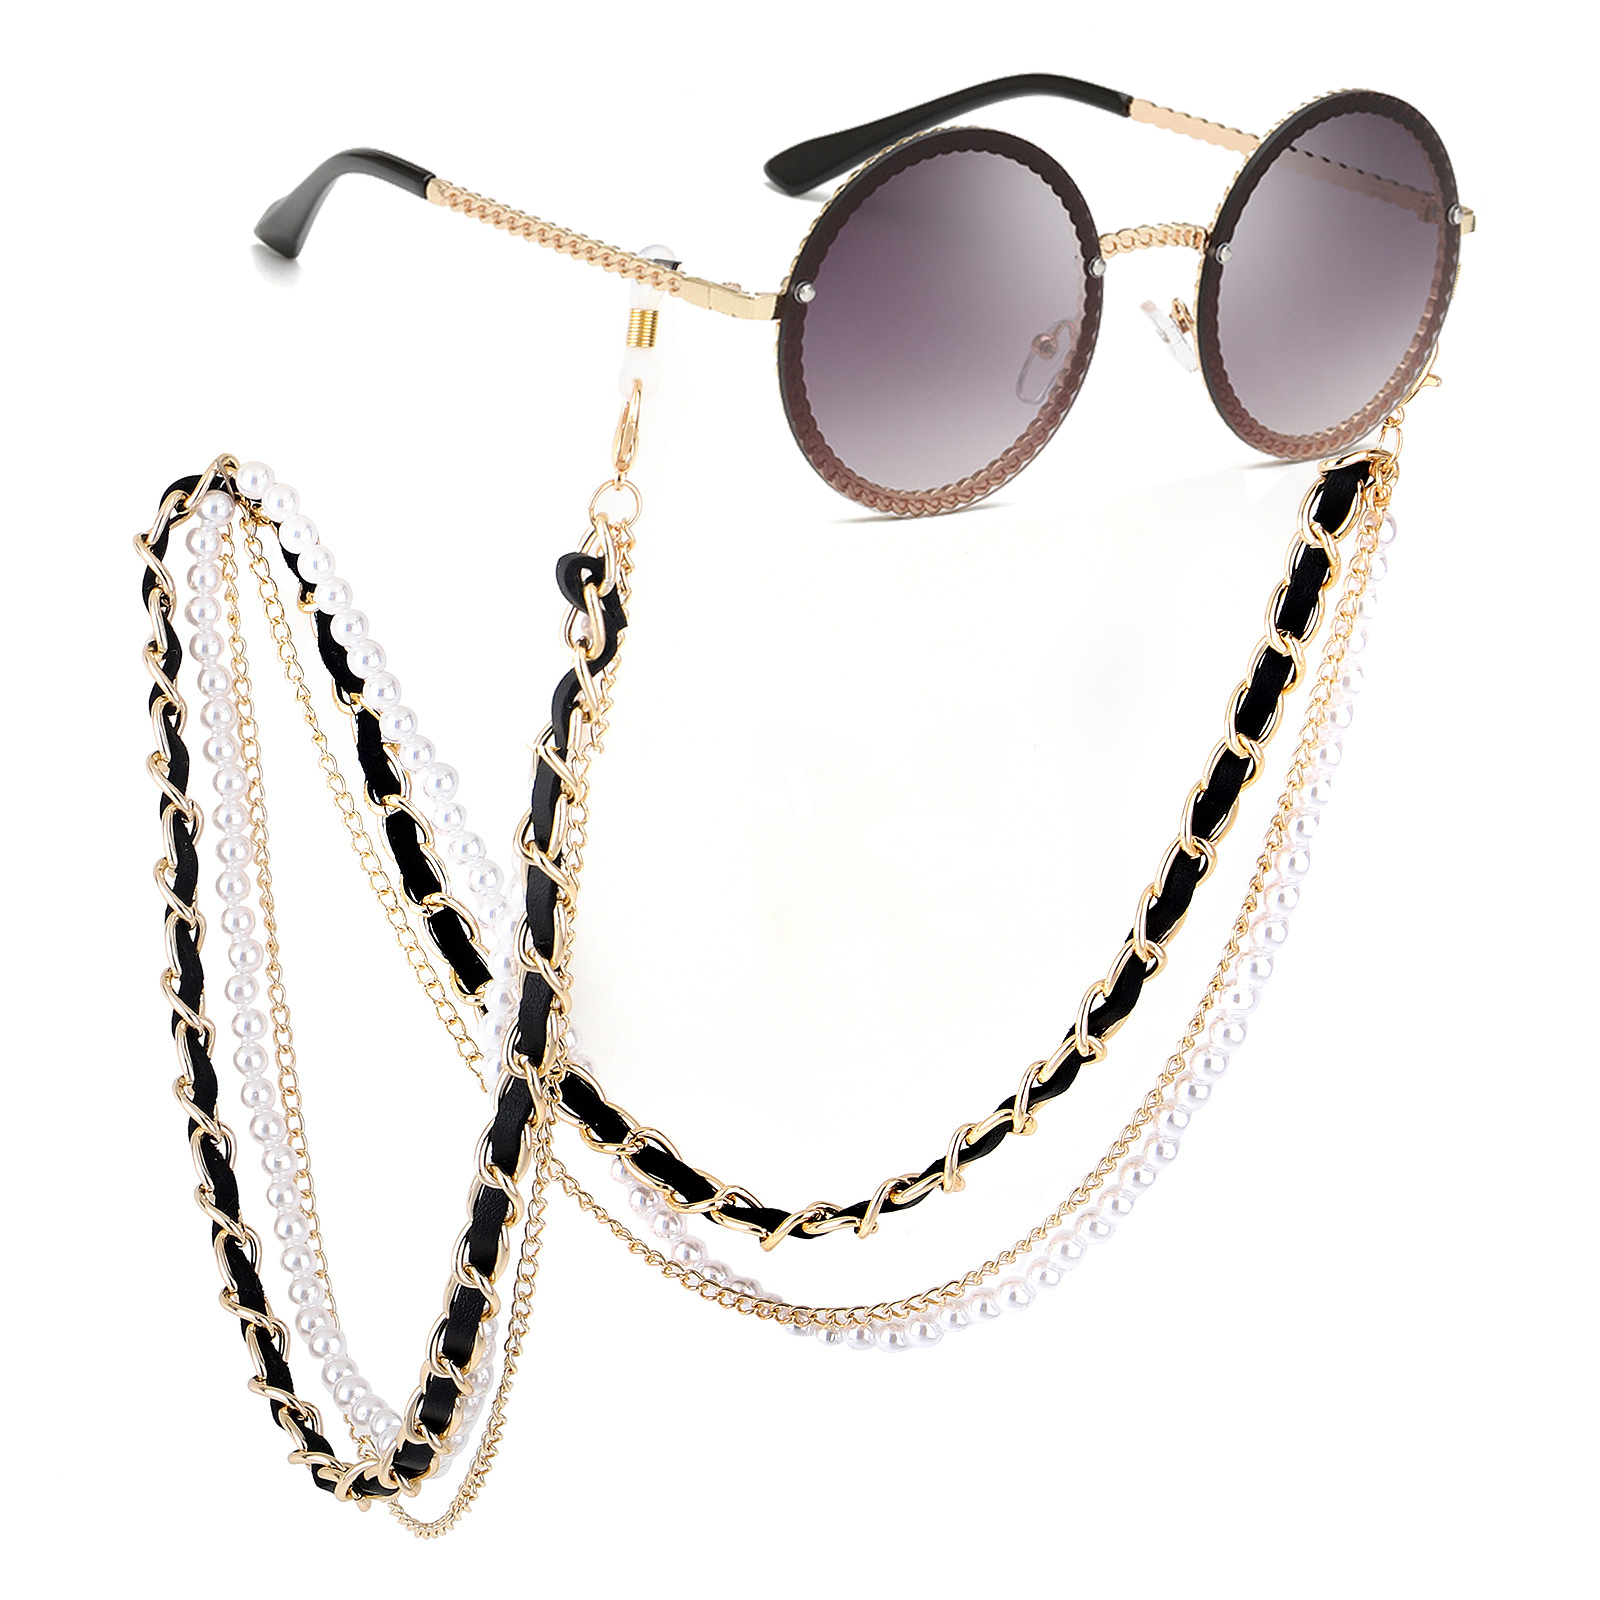 WHO CUTIE 2019 White Pearl Sunglasses Chain Women Lanyard With Strap Eye Glasses Accessories For Lady (only Chain No Glasses)